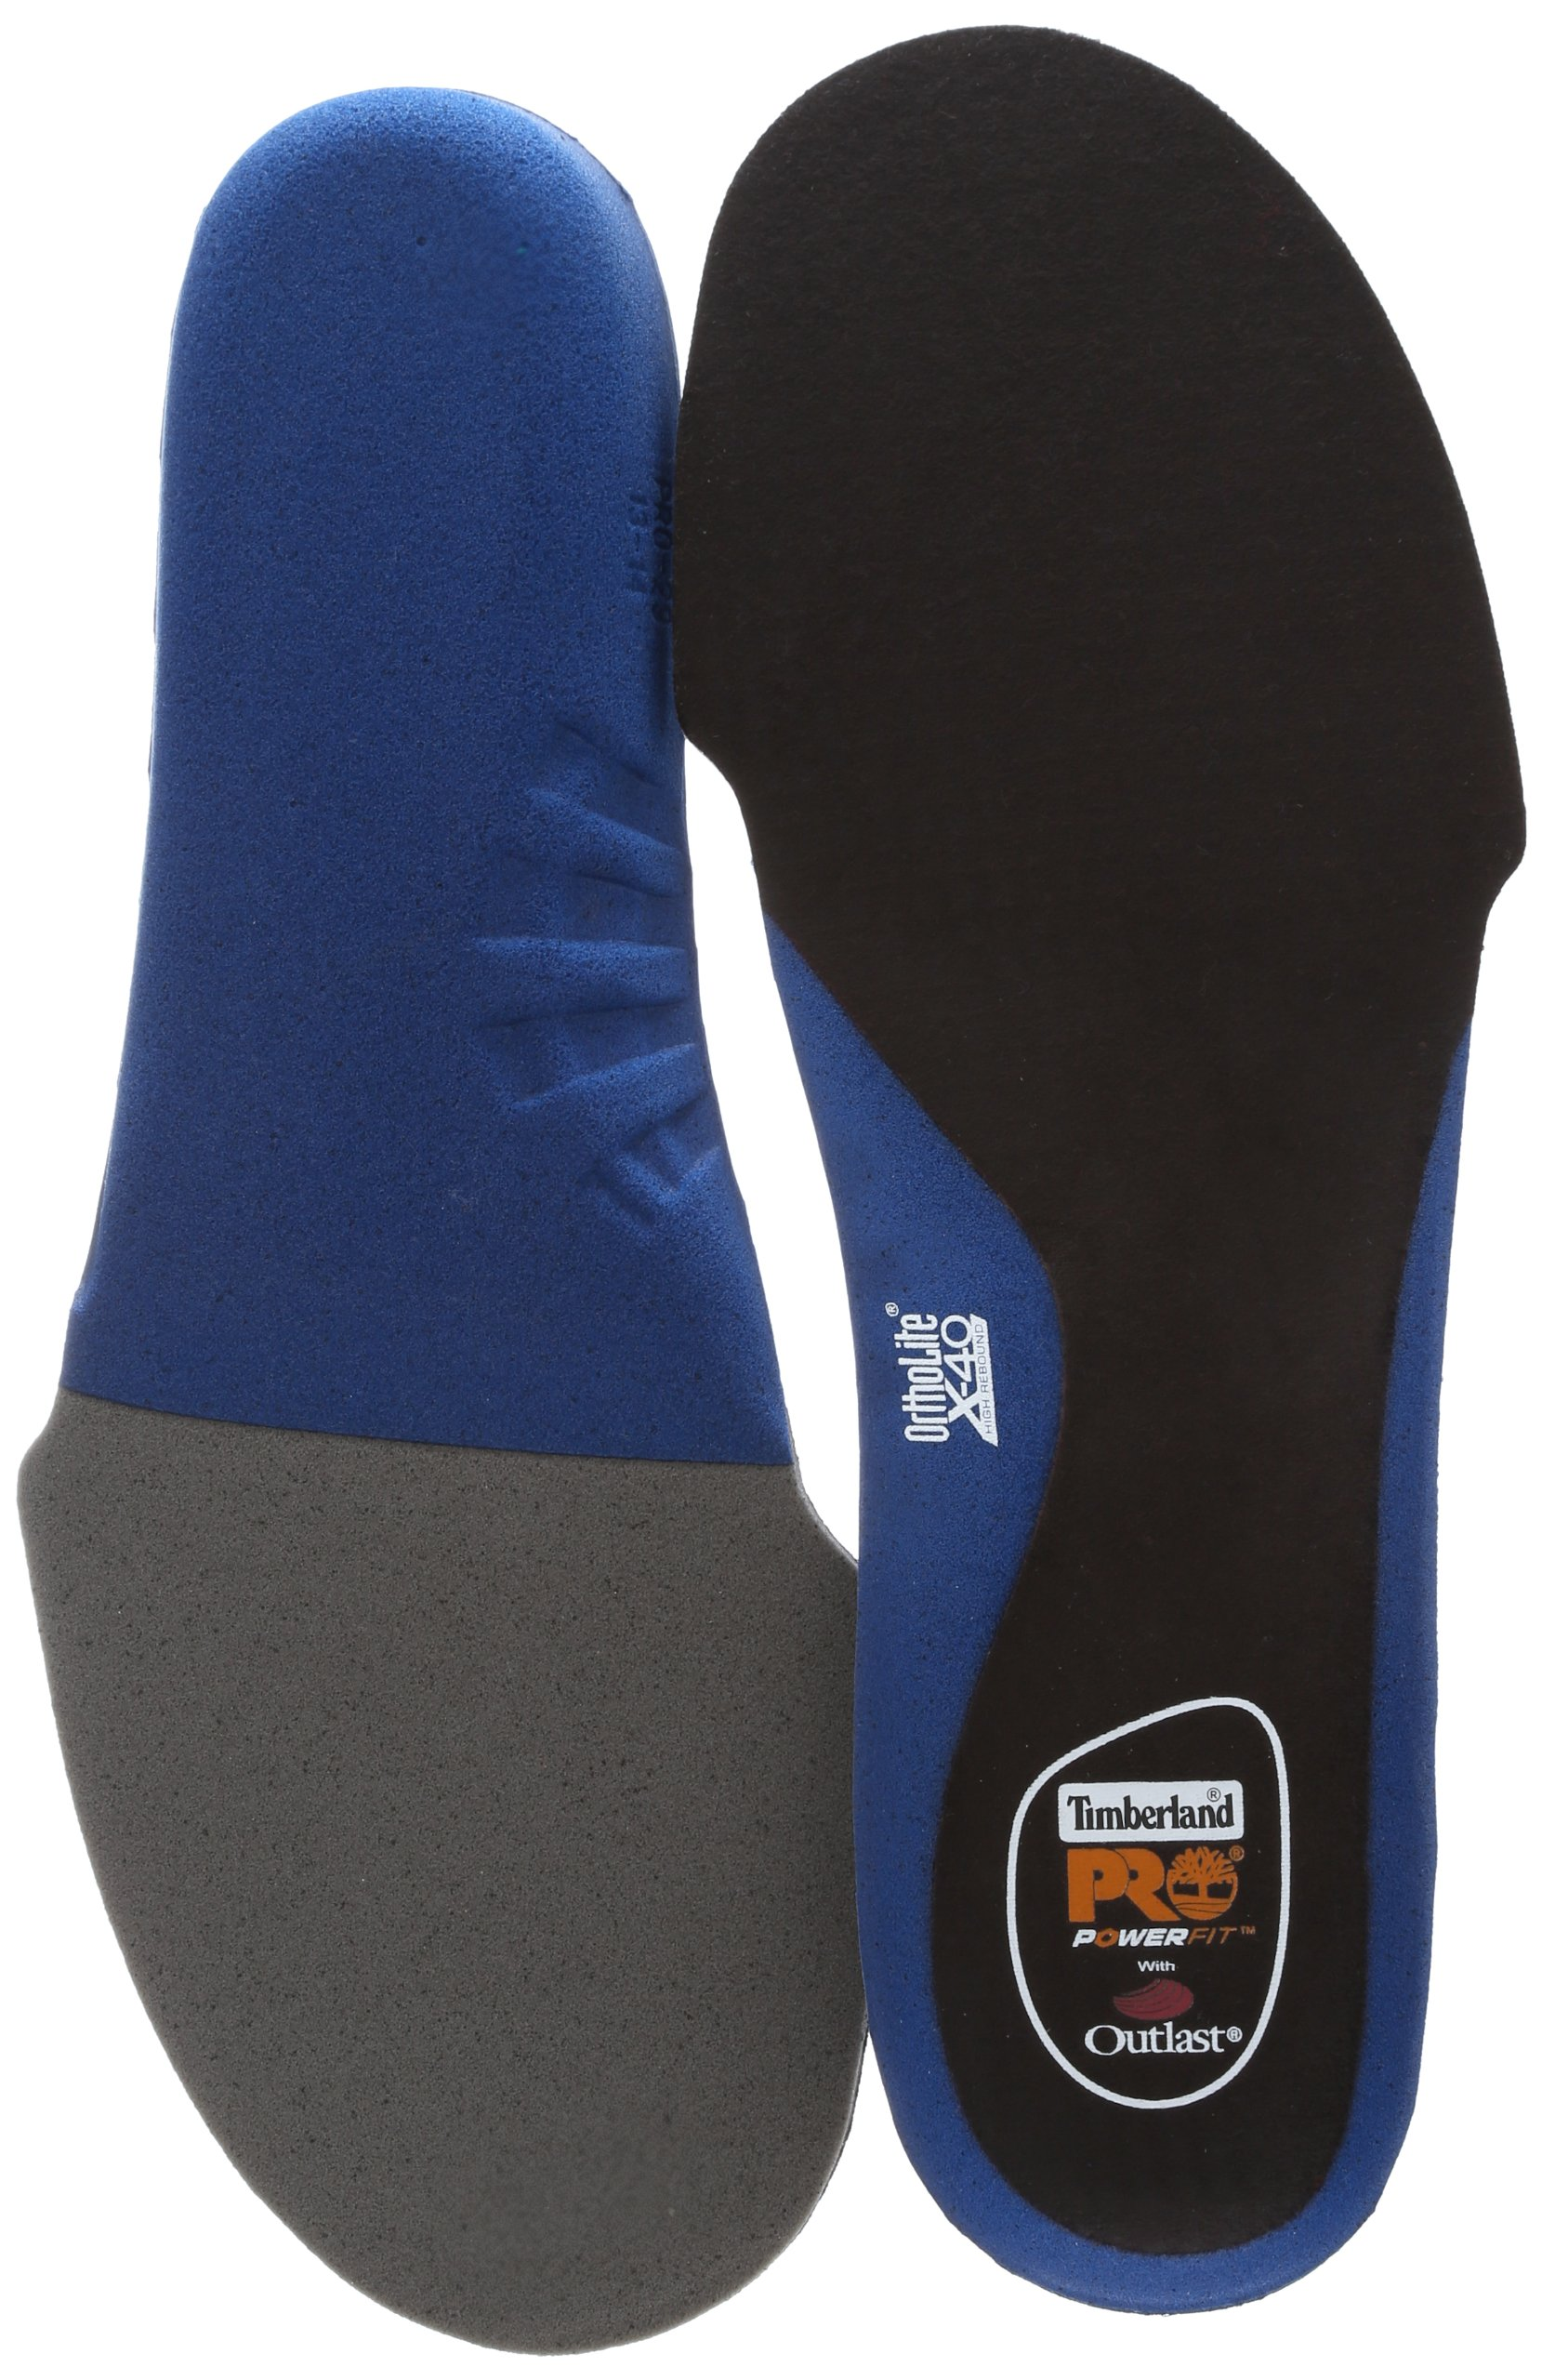 Timberland PRO Men's High Rebound Cushion Replacement Insole,Blue,X-Large/12-13 M US